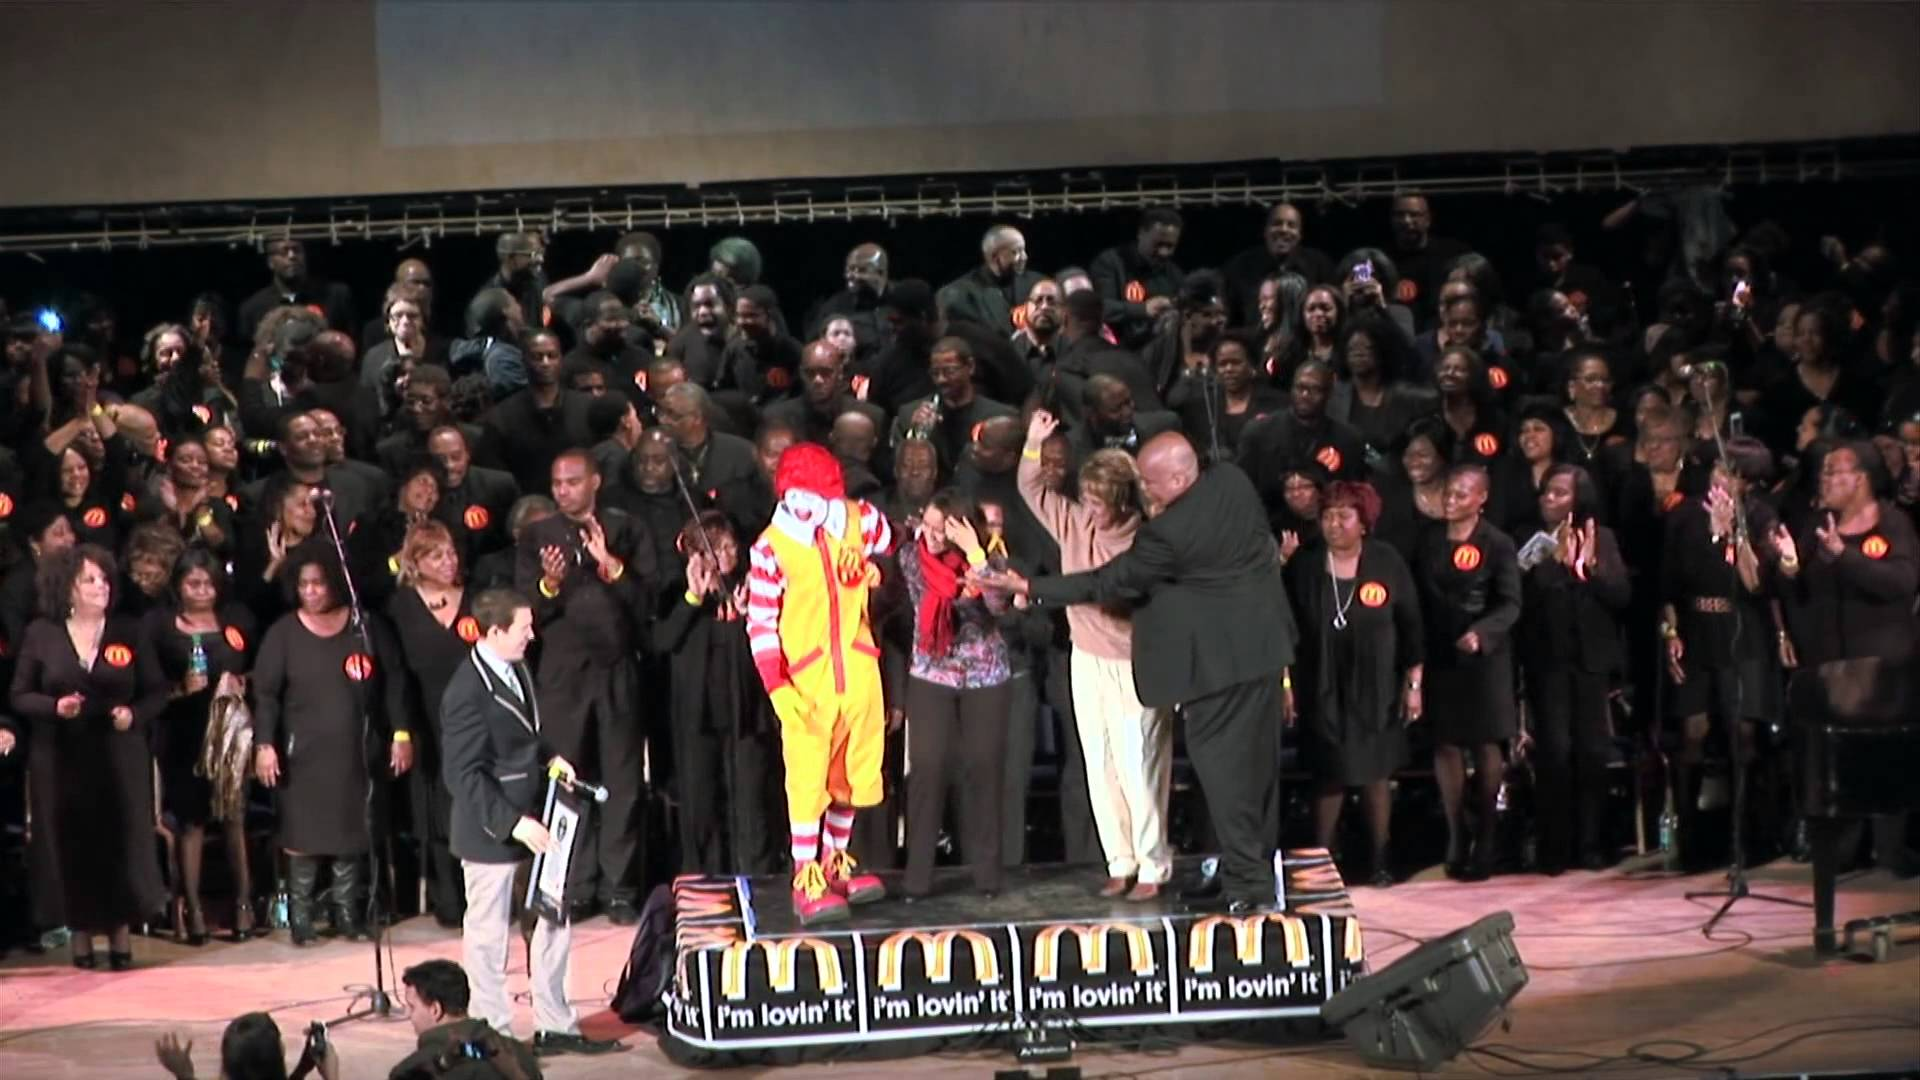 McDonald's Gospel Super Choir Performed at the Official Launch Event To Celebrate The New Additions To McDonald's All Day Breakfast Menu